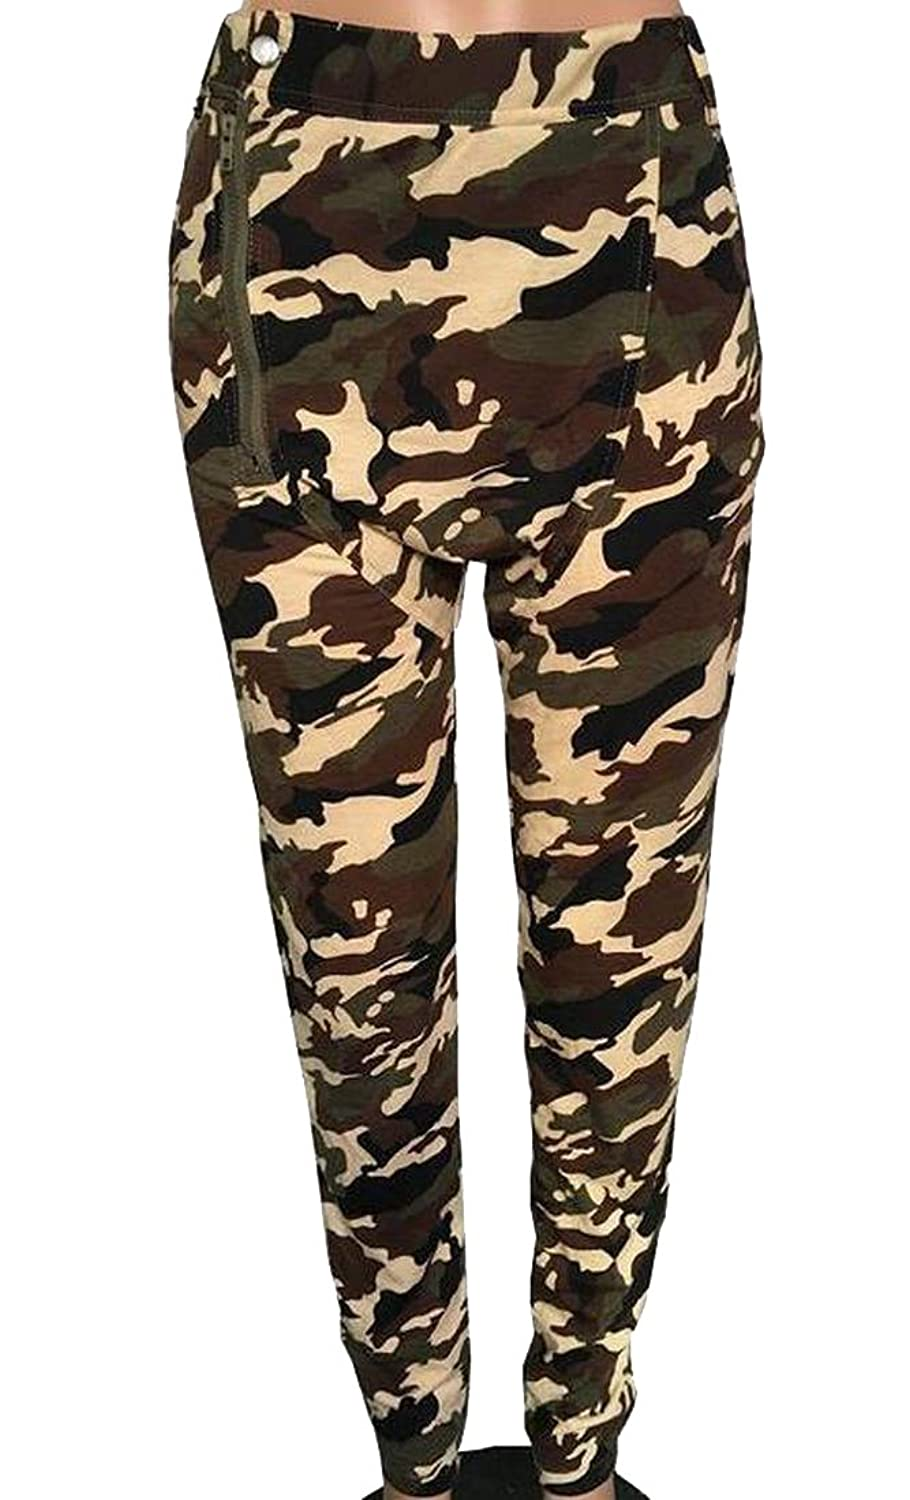 HMX Womens Zipper Detail Slim Fit Camouflage Casual Pants